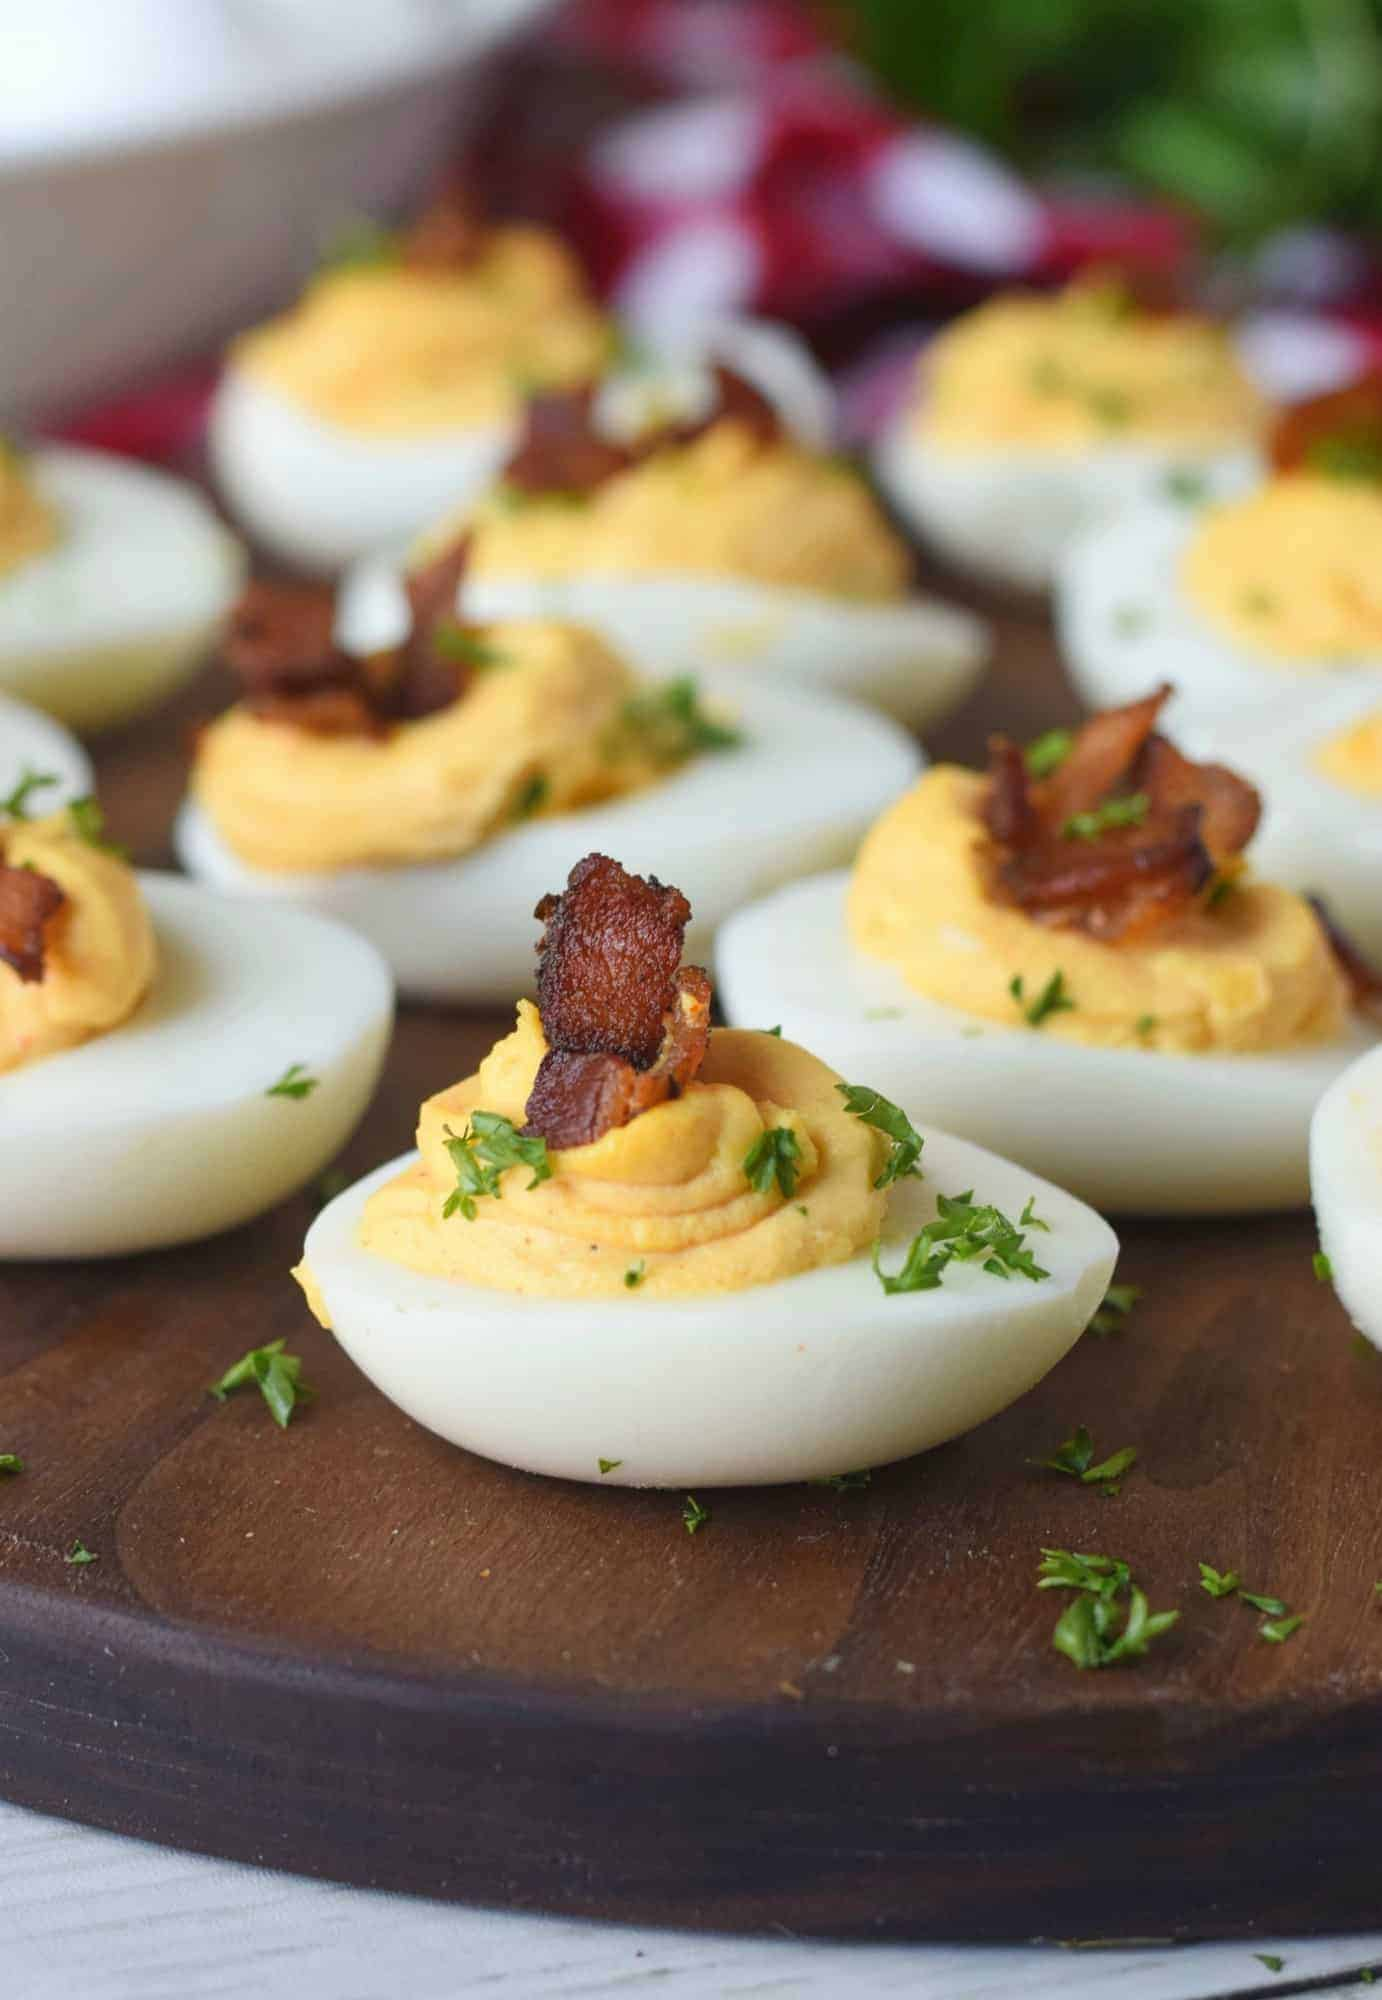 Chipotle bacon deviled eggs on a small cutting board. With parsley sprinkled on top.